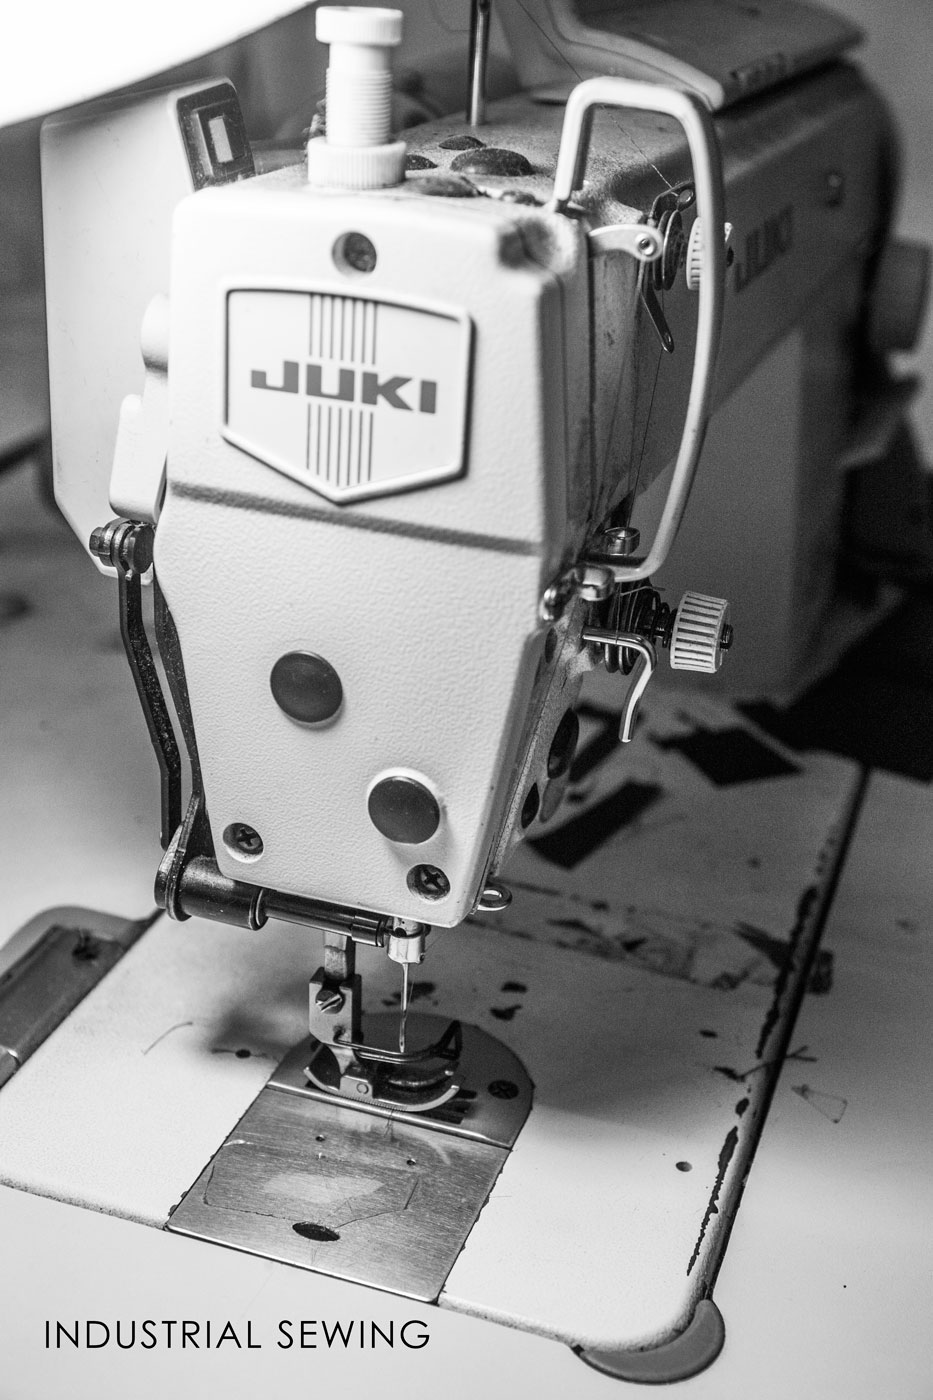 Industrial Sewing - Using our Industrial Juki sewing machines we can prototype textile products in the blink of an eye.  We also work closely with sewing contractors for any size textile project.